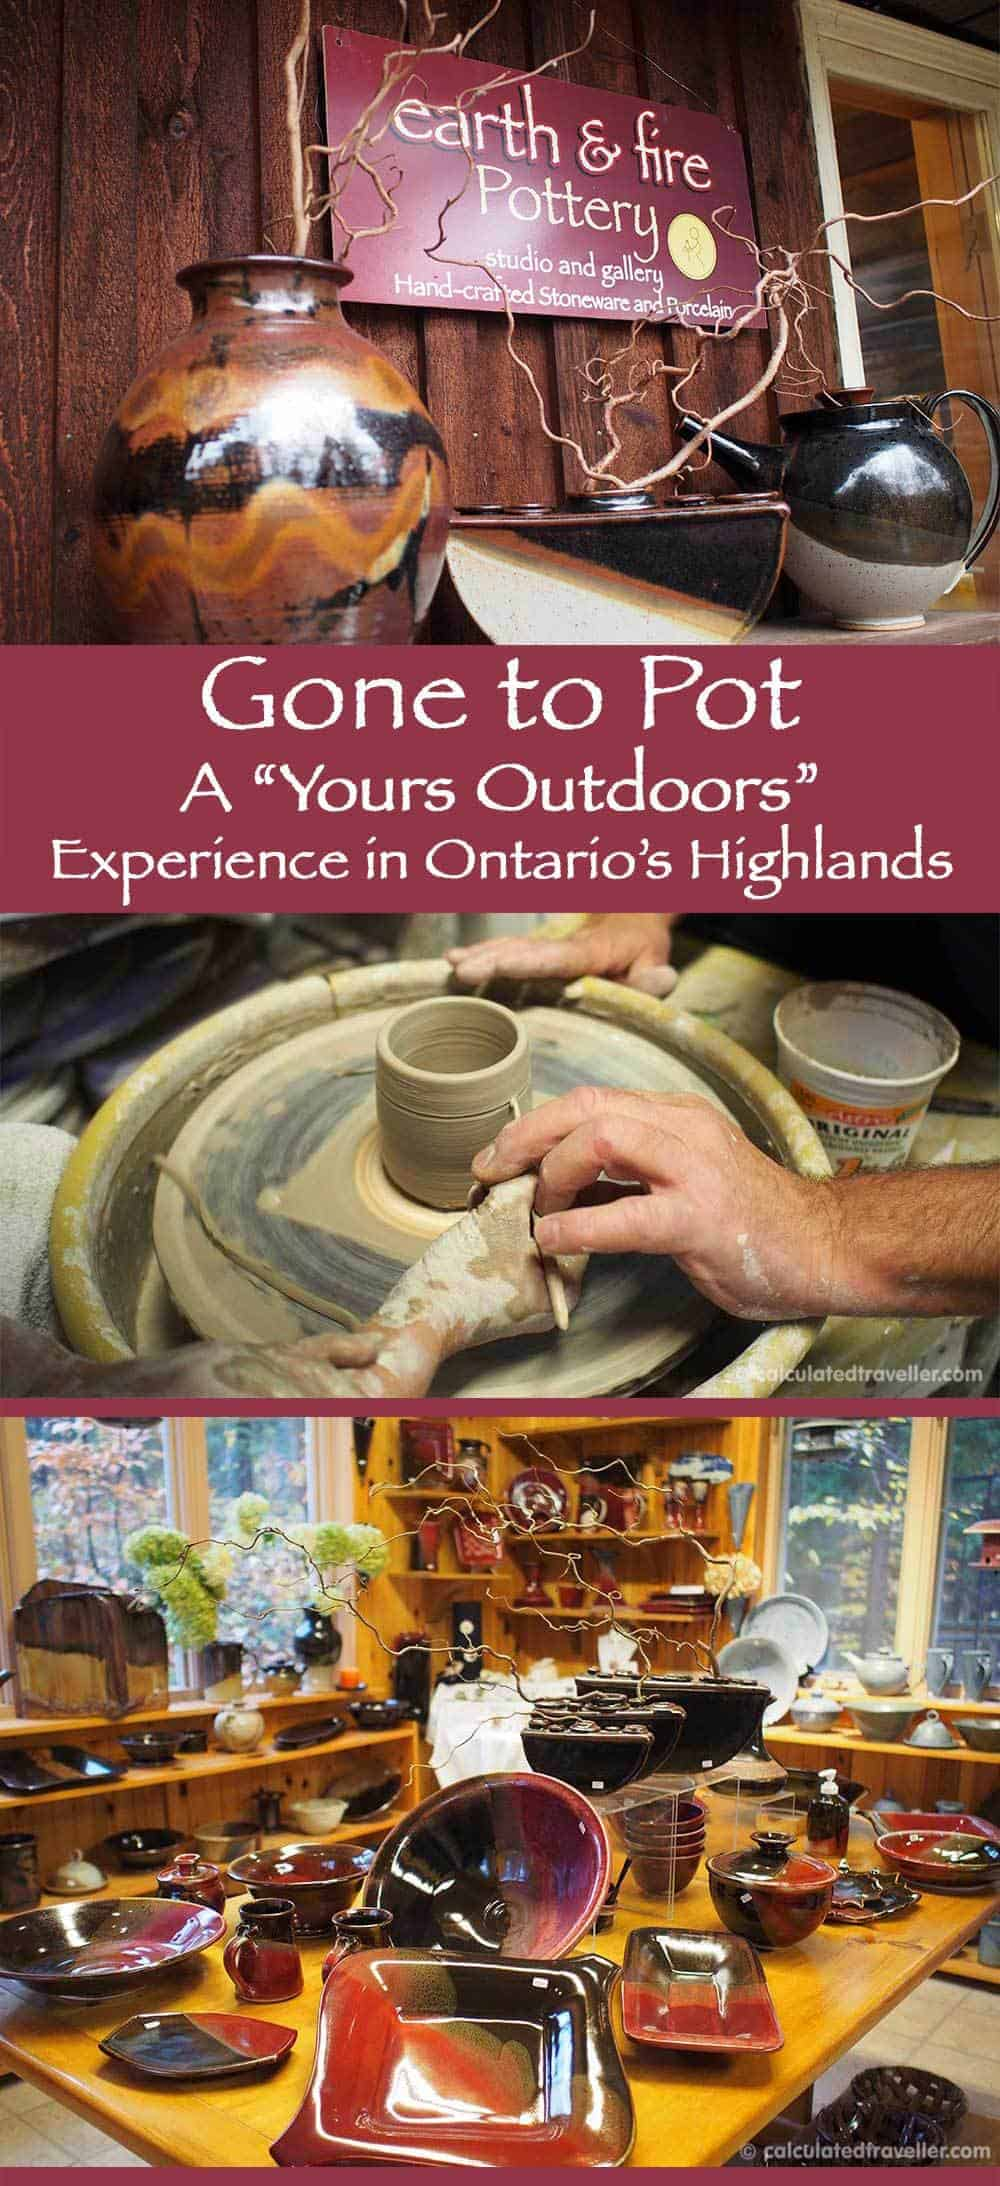 Gone to Pot. A Yours Outdoors Pottery Experience in Haliburton, Ontario's Highlands by Calculated Traveller